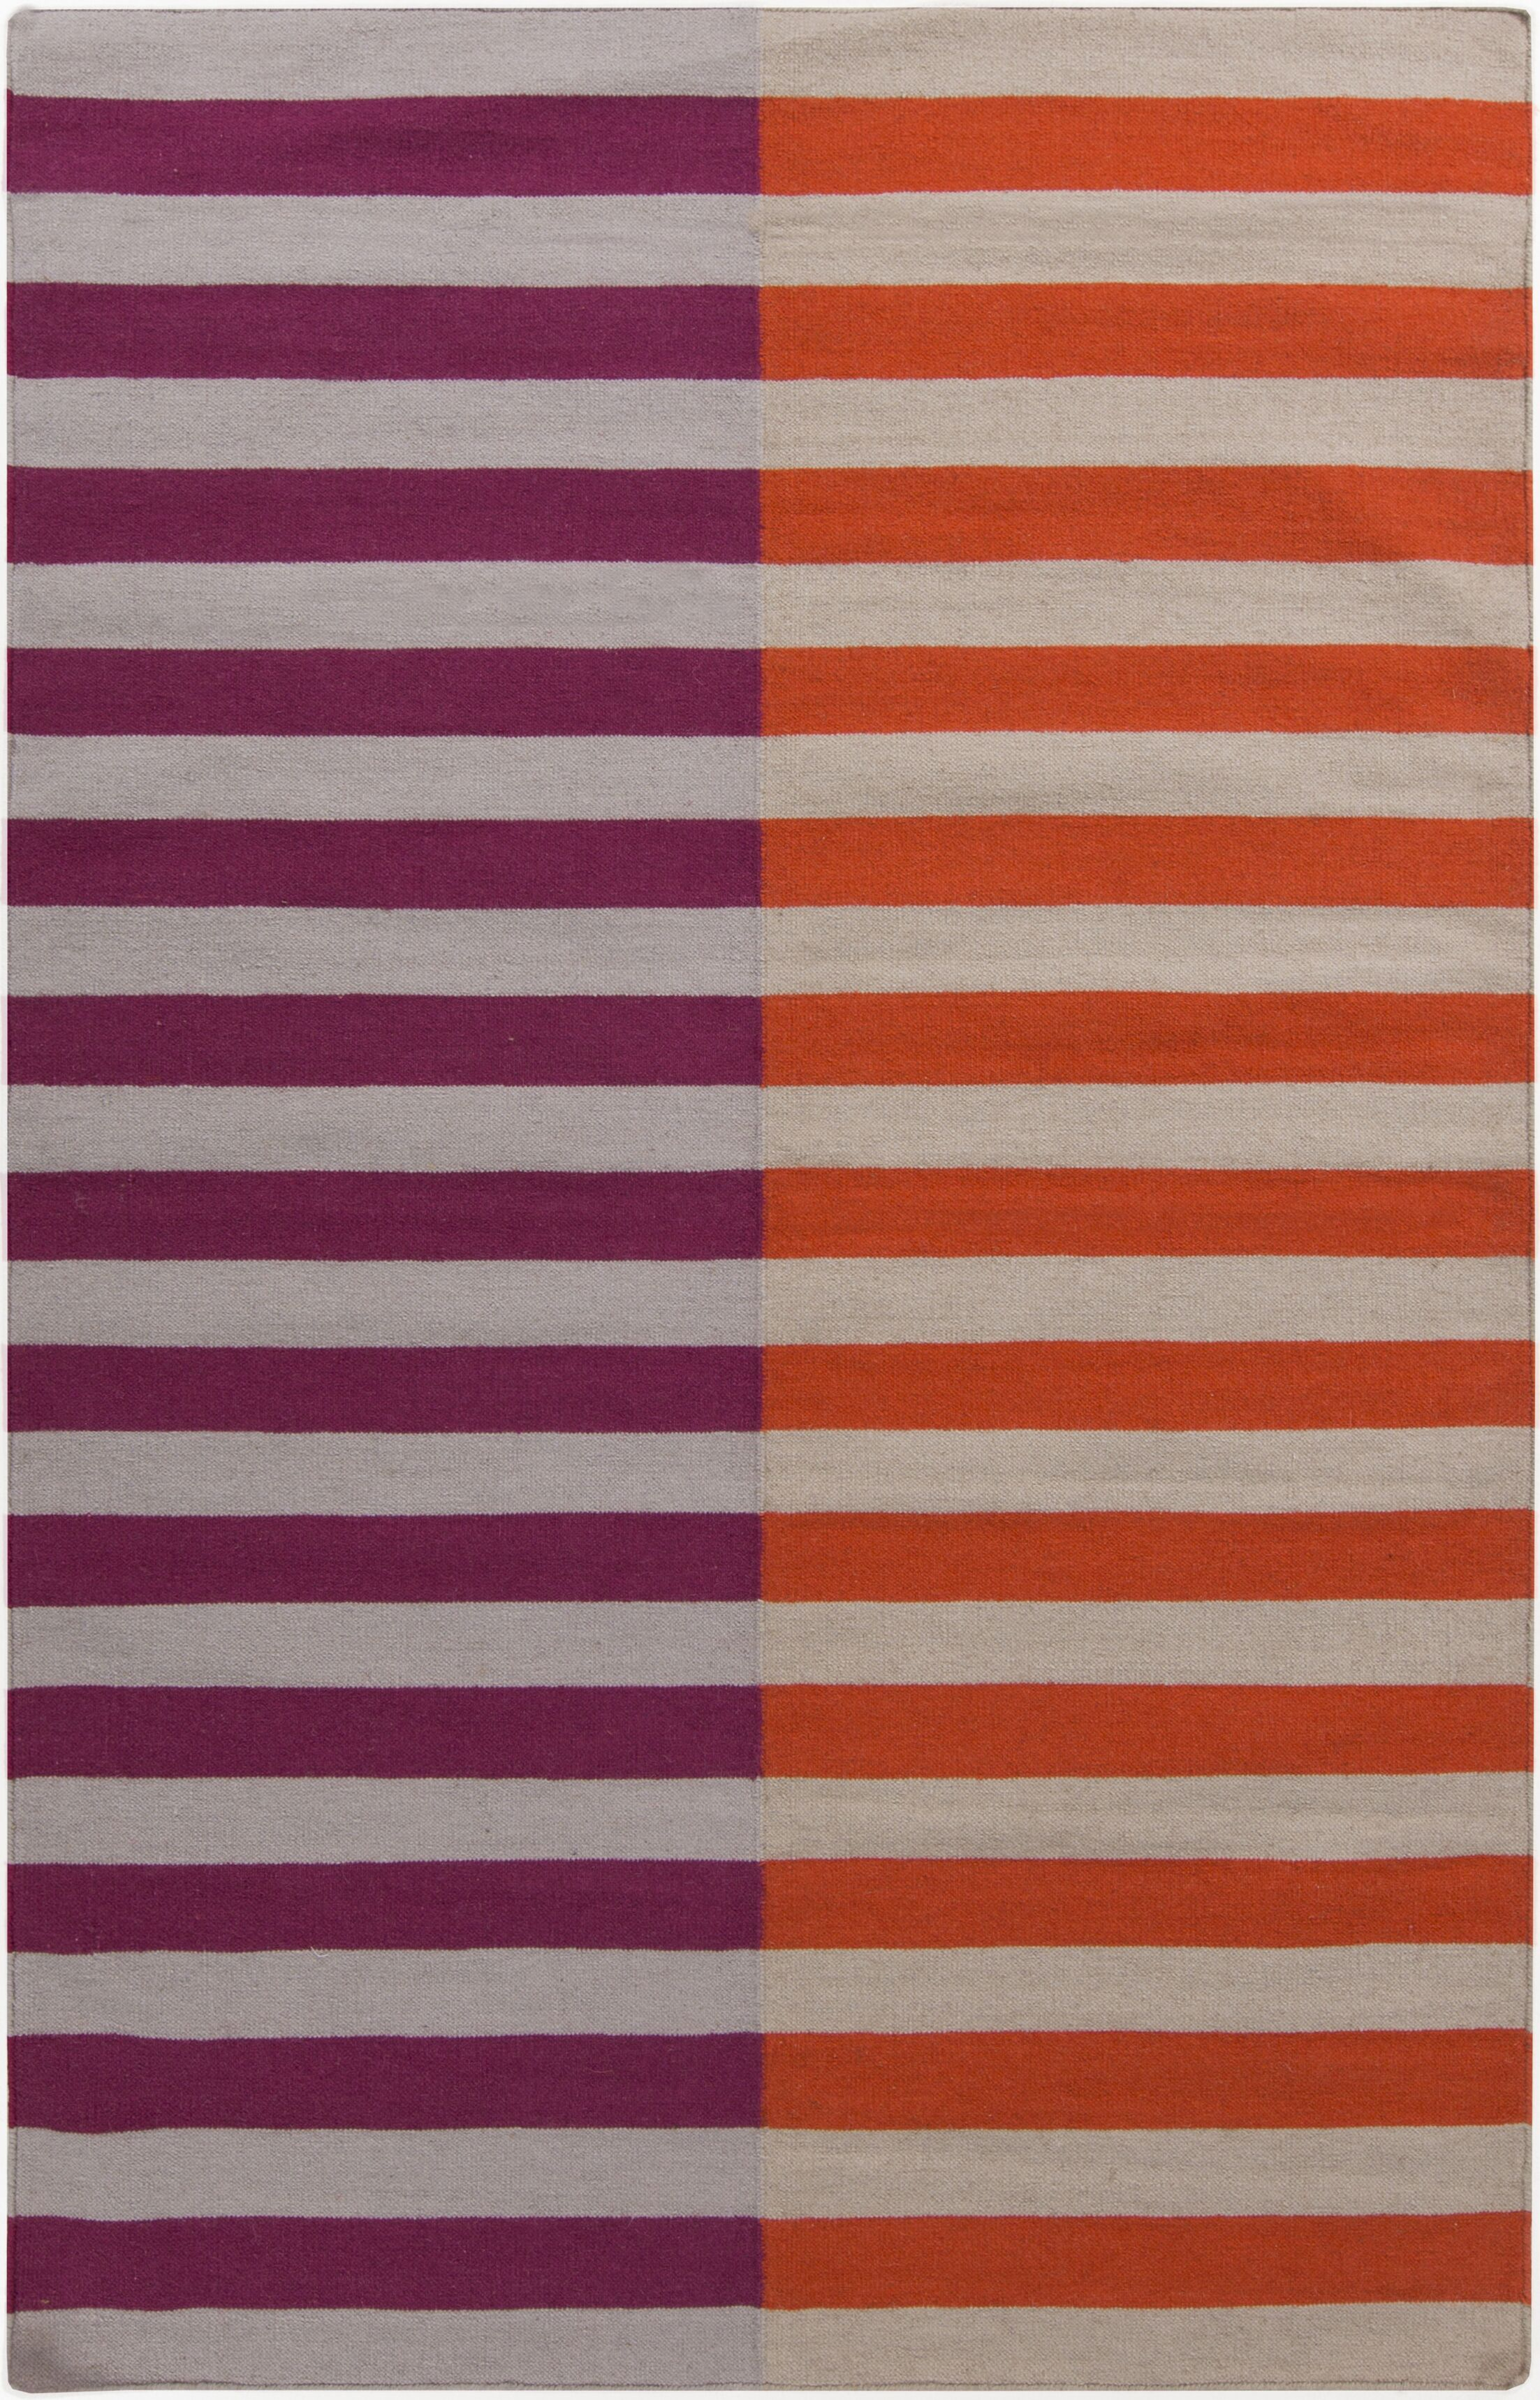 Marion Hand Woven Wool Pink/Orange Area Rug Rug Size: Rectangle 8' x 11'